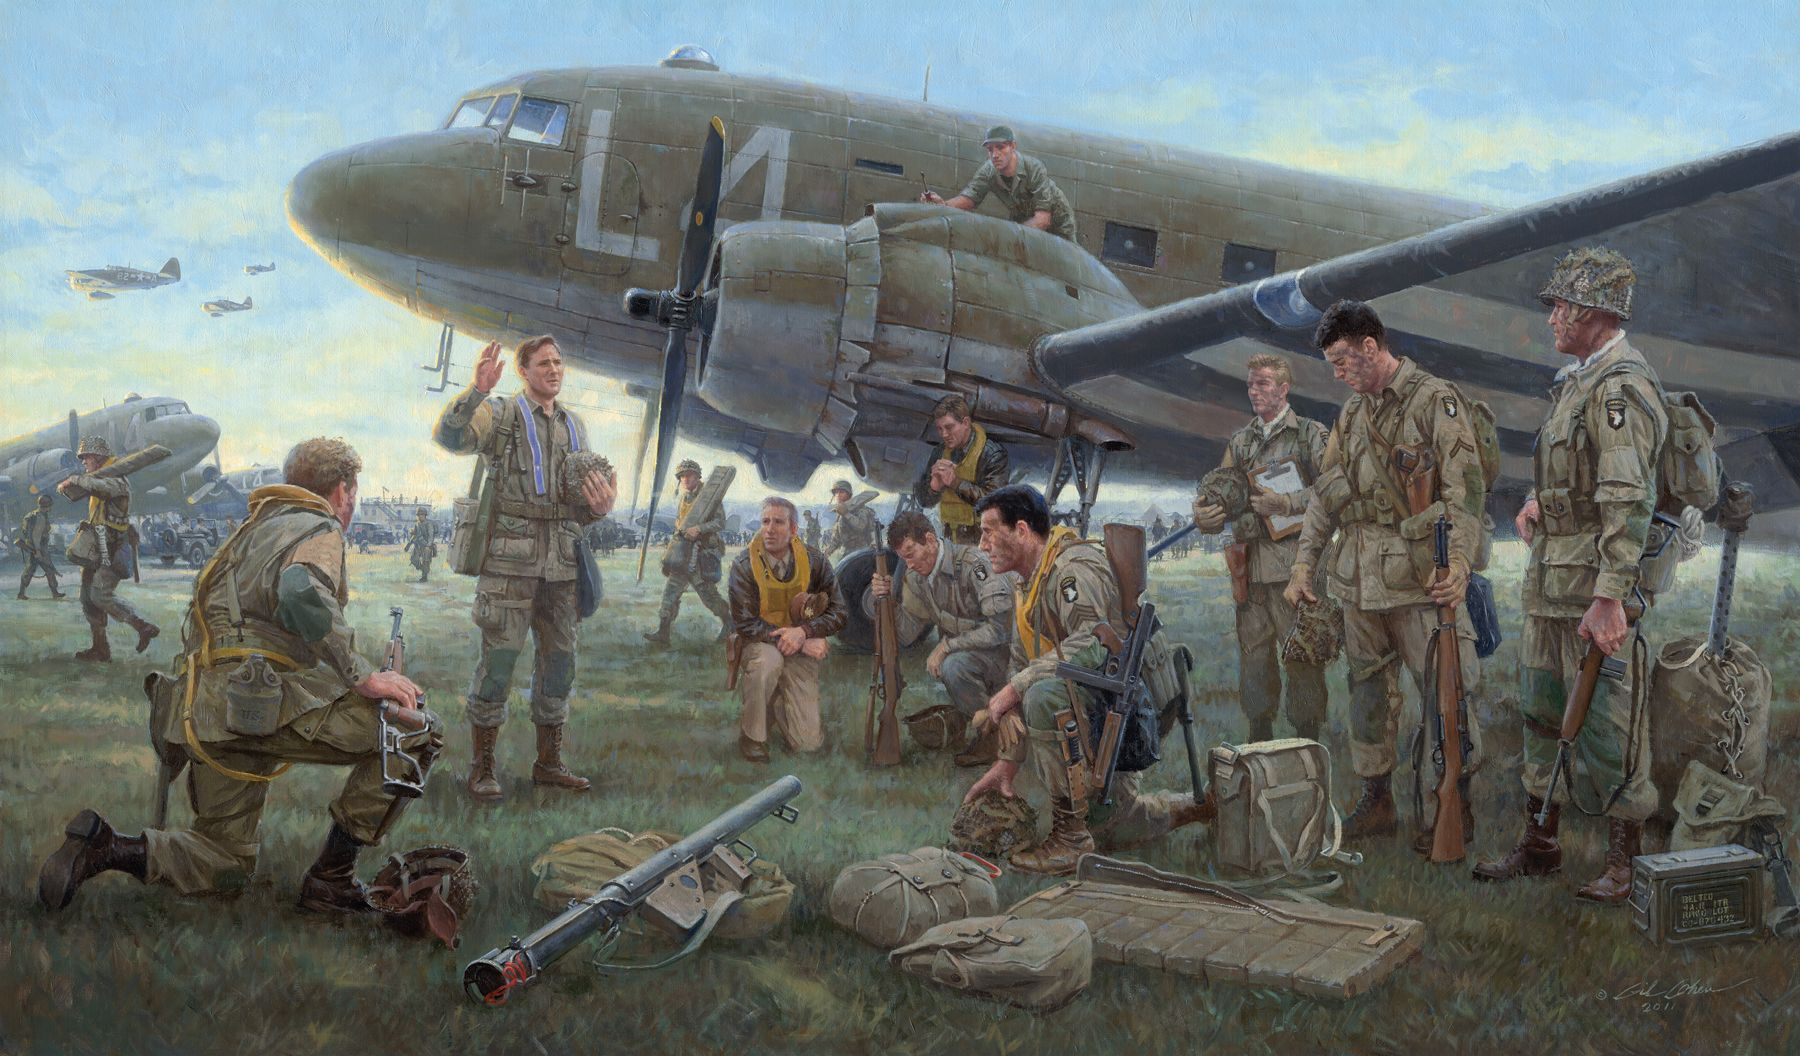 101st airborne d-day equipment